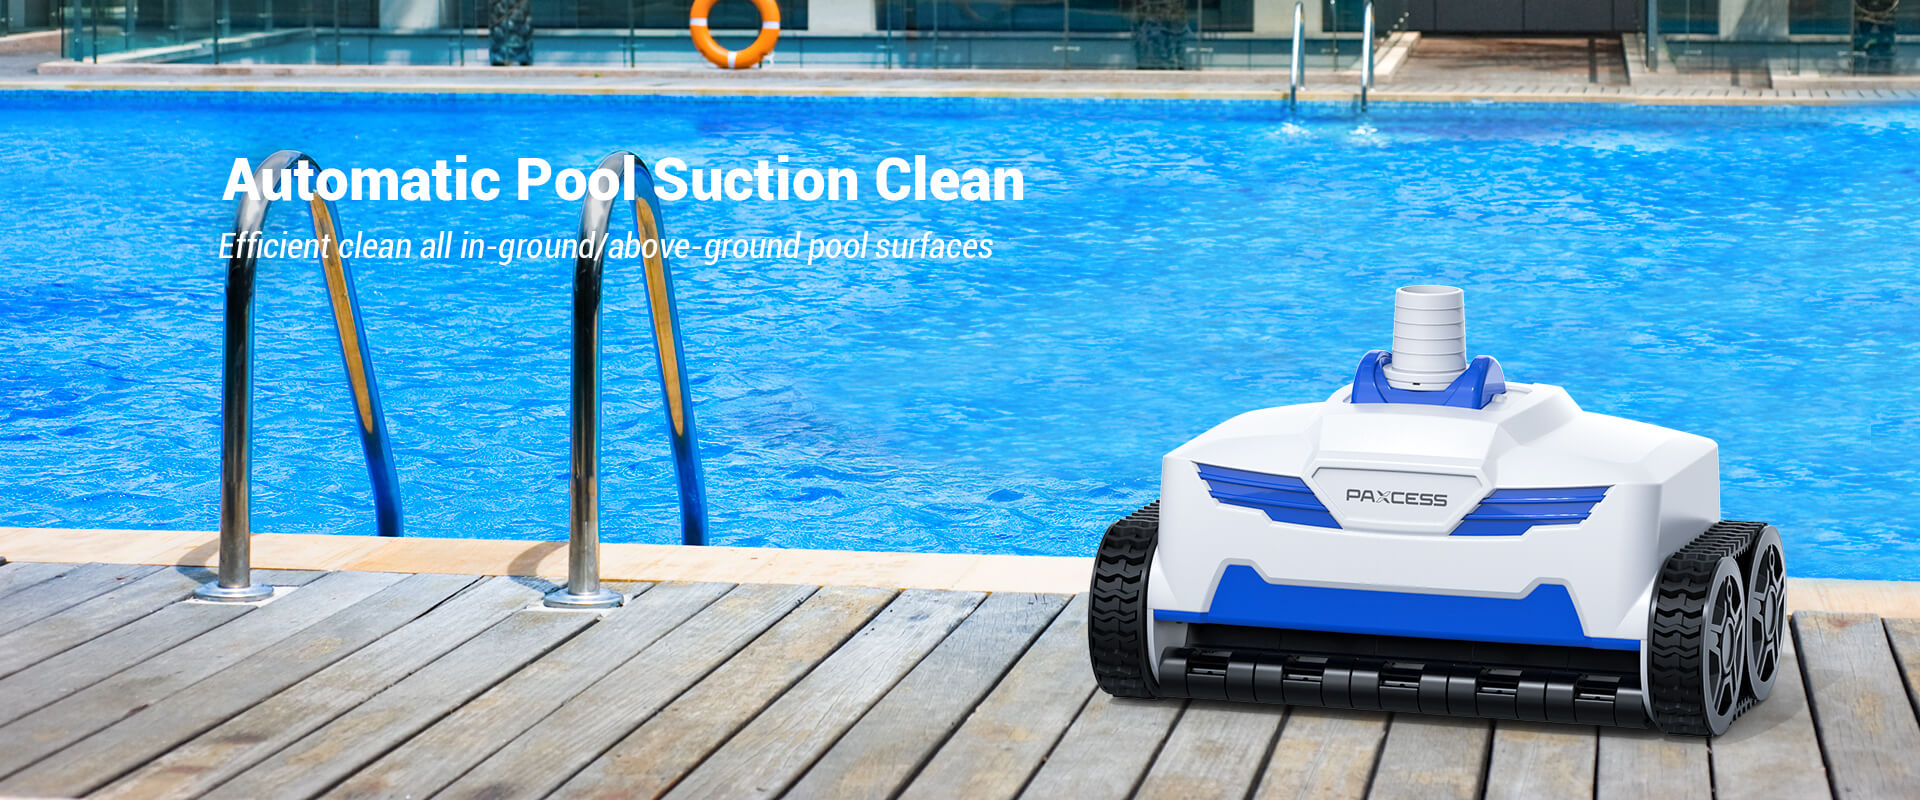 PAXCESS Automatic Pool Suction Cleaner 1